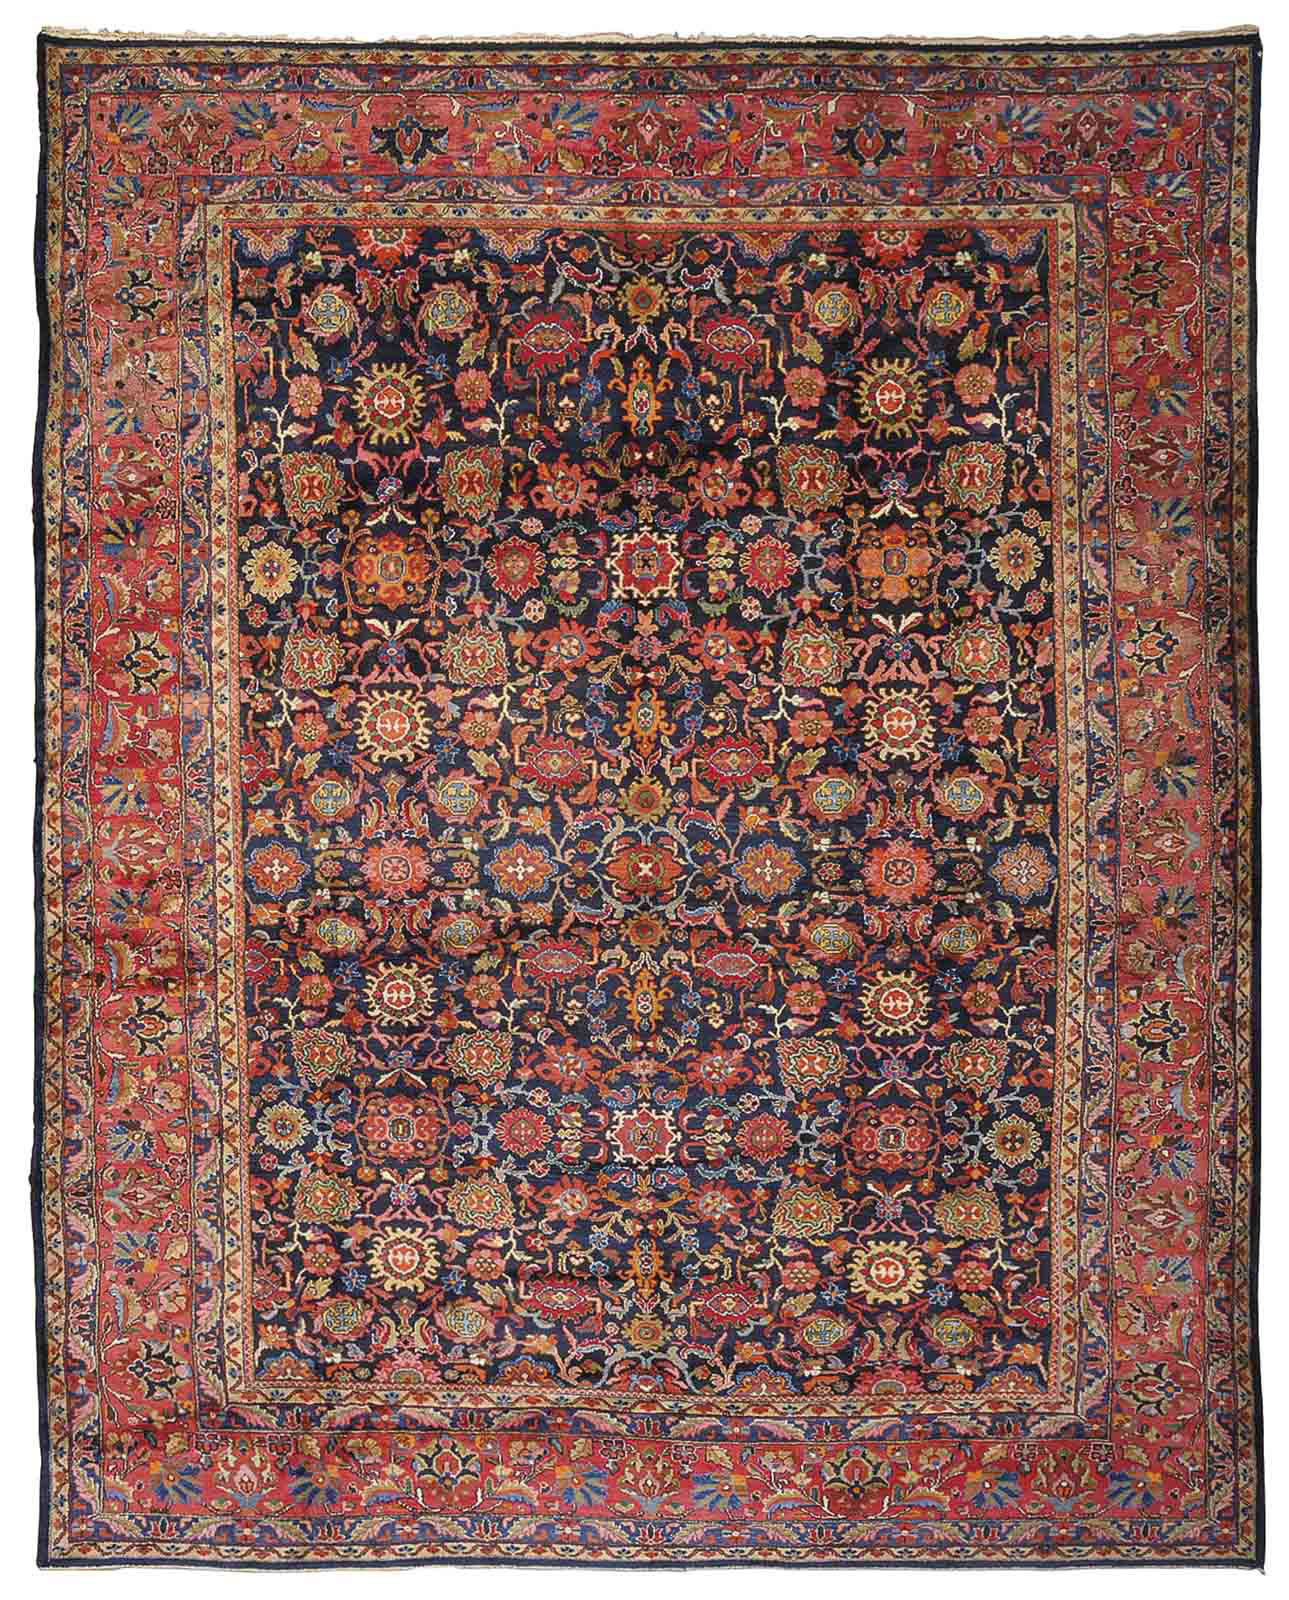 A SENNEH-MALAYIR CARPET, WEST